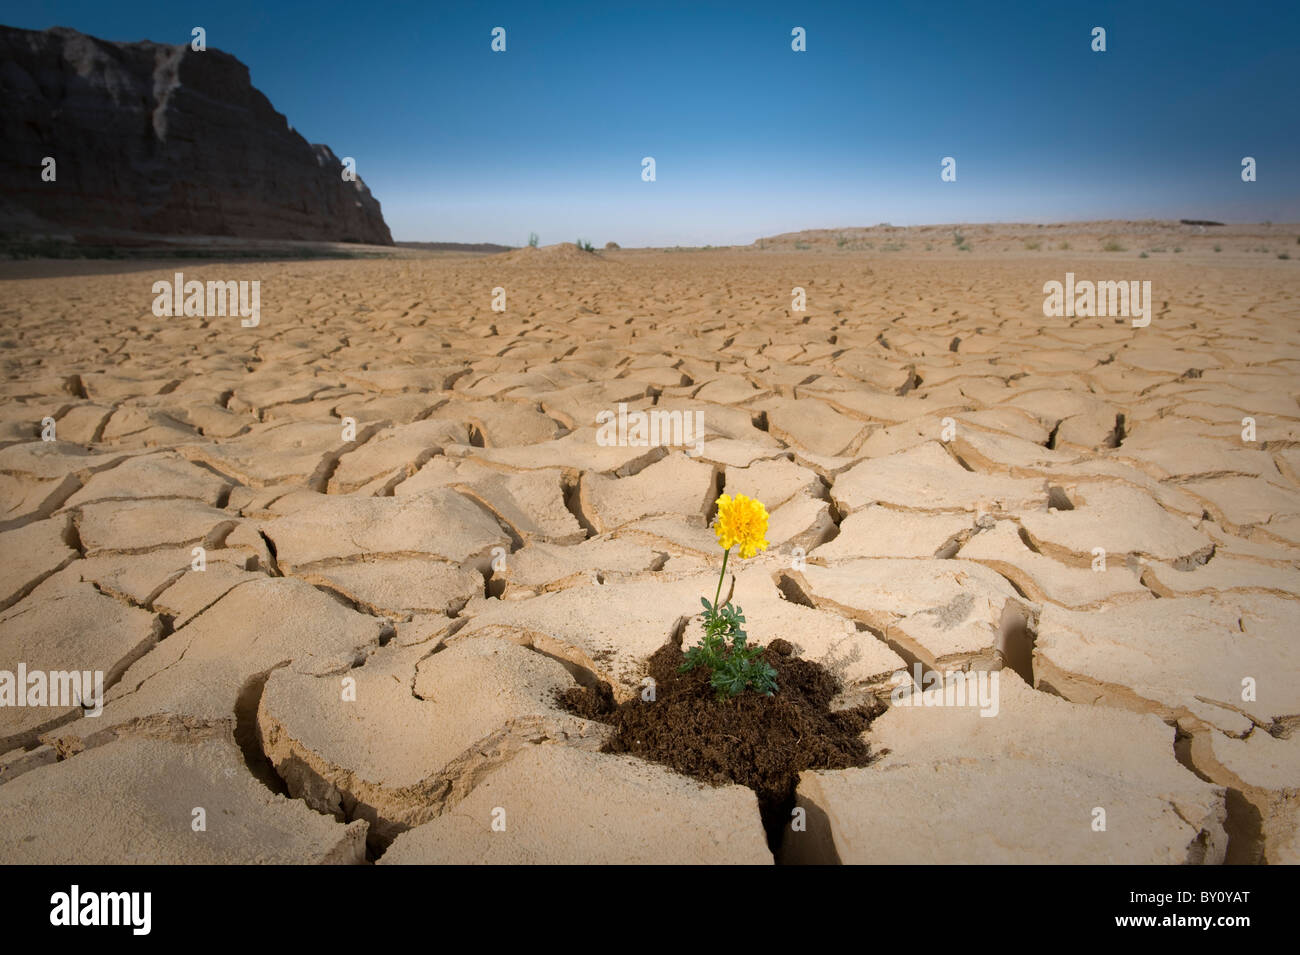 small plant with yellow flower cracked soil  - Stock Image